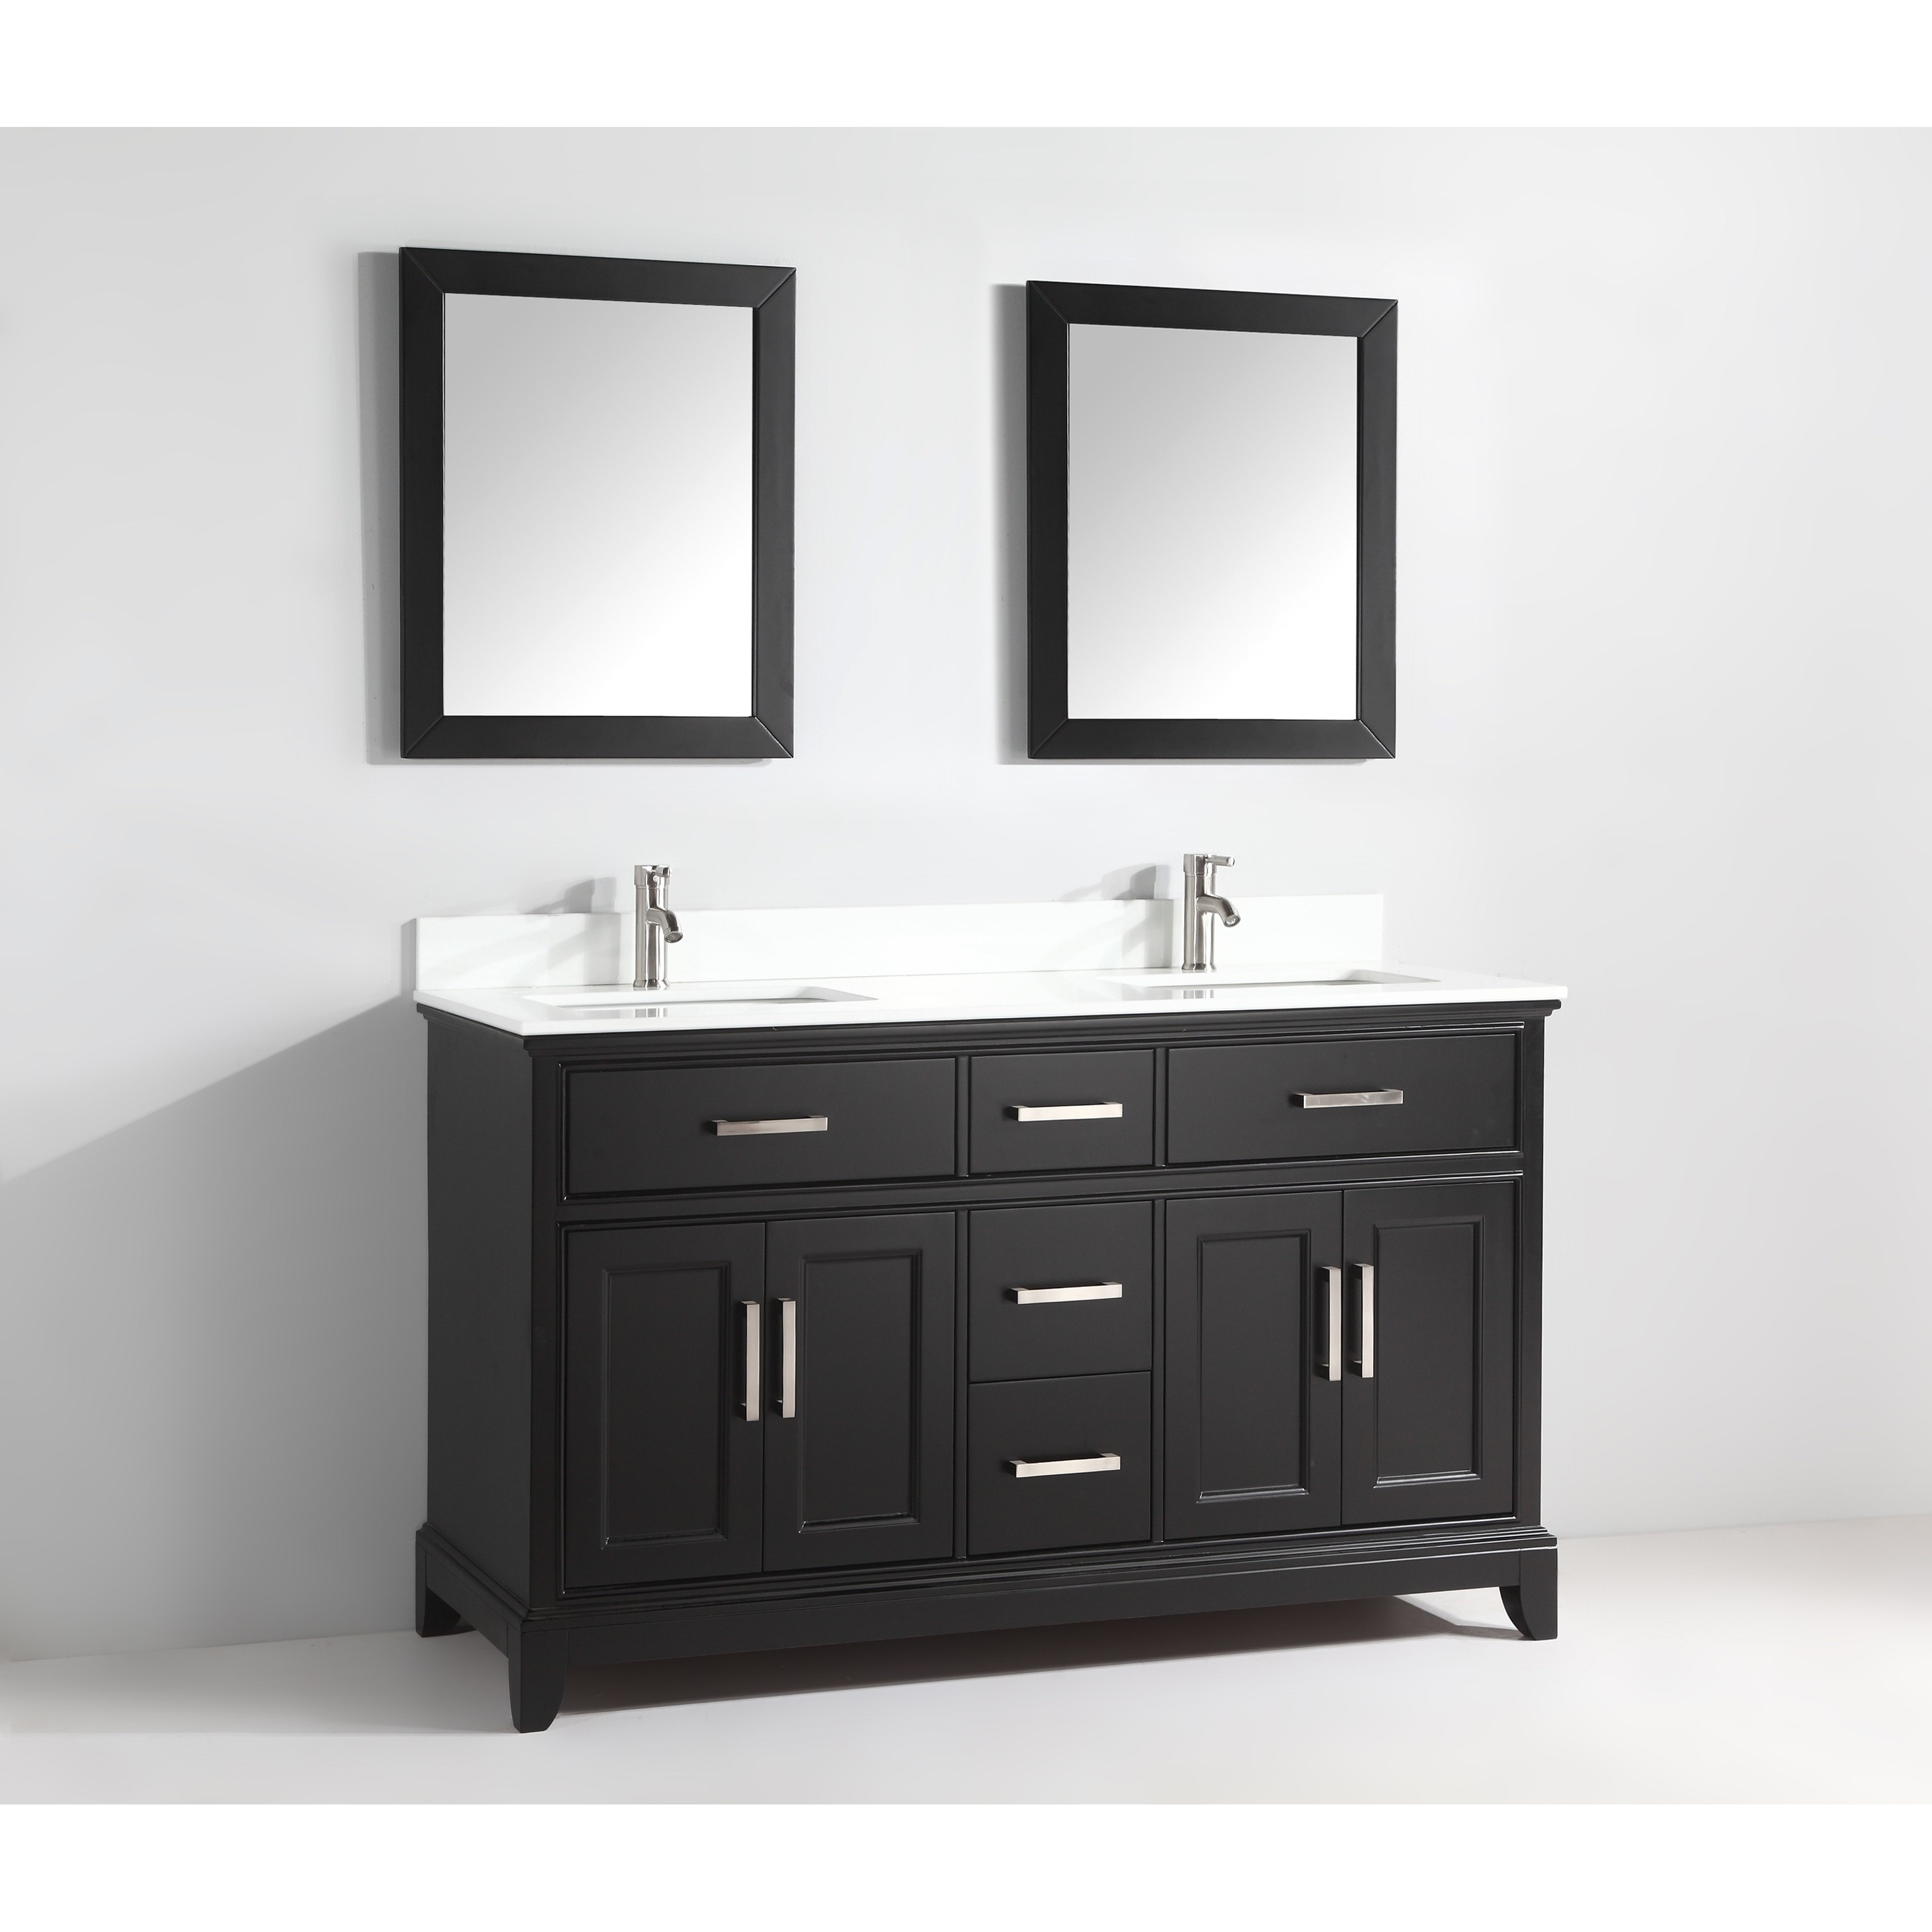 Super Vanity Art 72 Double Sink Bathroom Vanity Set Super White Phoenix Stone Top Soft Closing Doors Undermount Sink With Free Mirror Home Interior And Landscaping Synyenasavecom